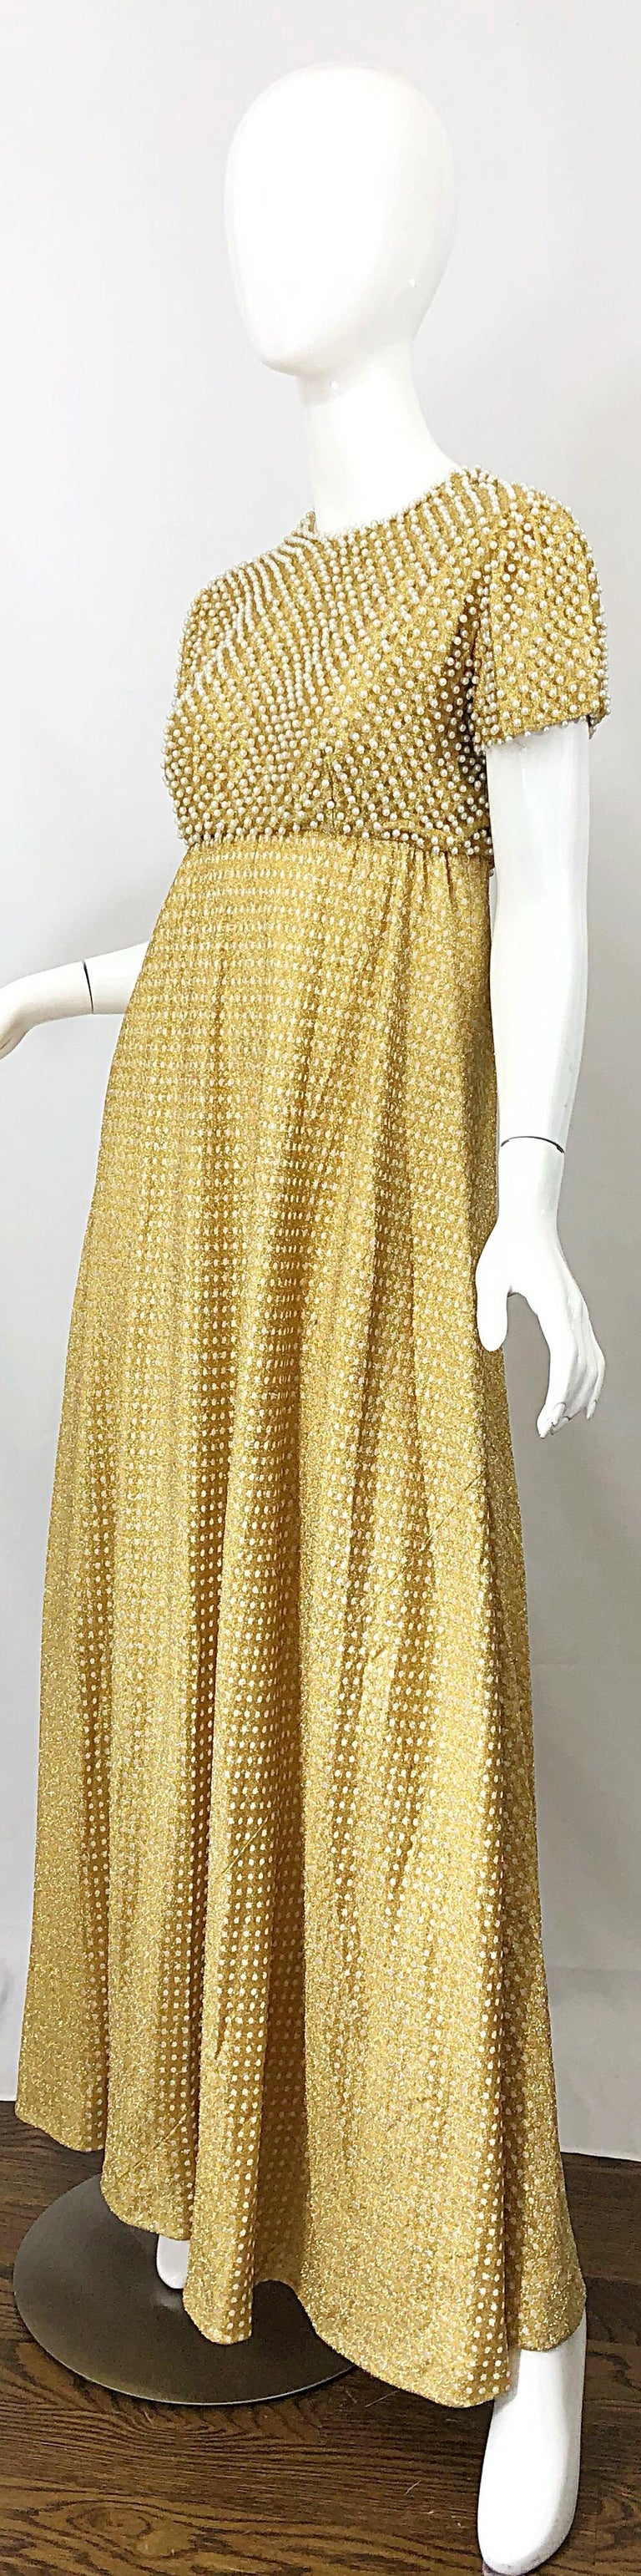 Women's 1960s Geoffrey Beene Couture Gold Silk Pearl Encrusted Vintage 60s Gown Dress For Sale